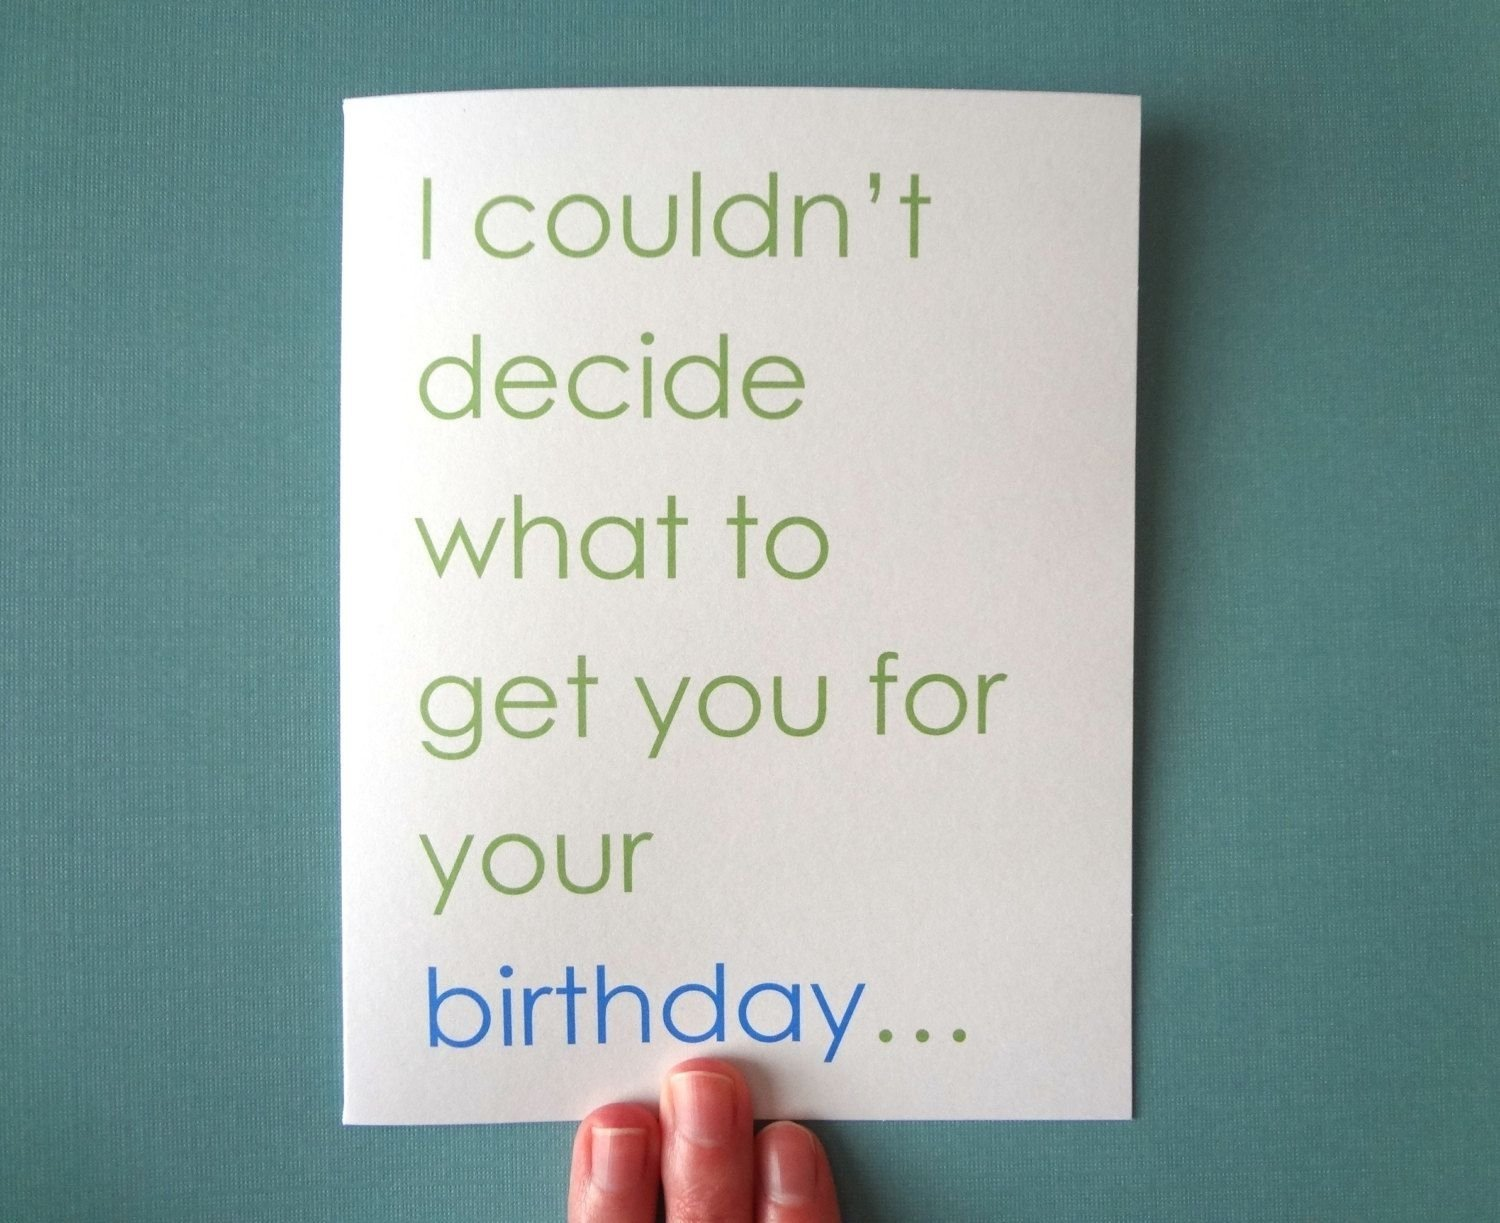 10 Wonderful Sexy Birthday Ideas For Boyfriend dirty birthday card for boyfriend birthday card for husband wife 2021